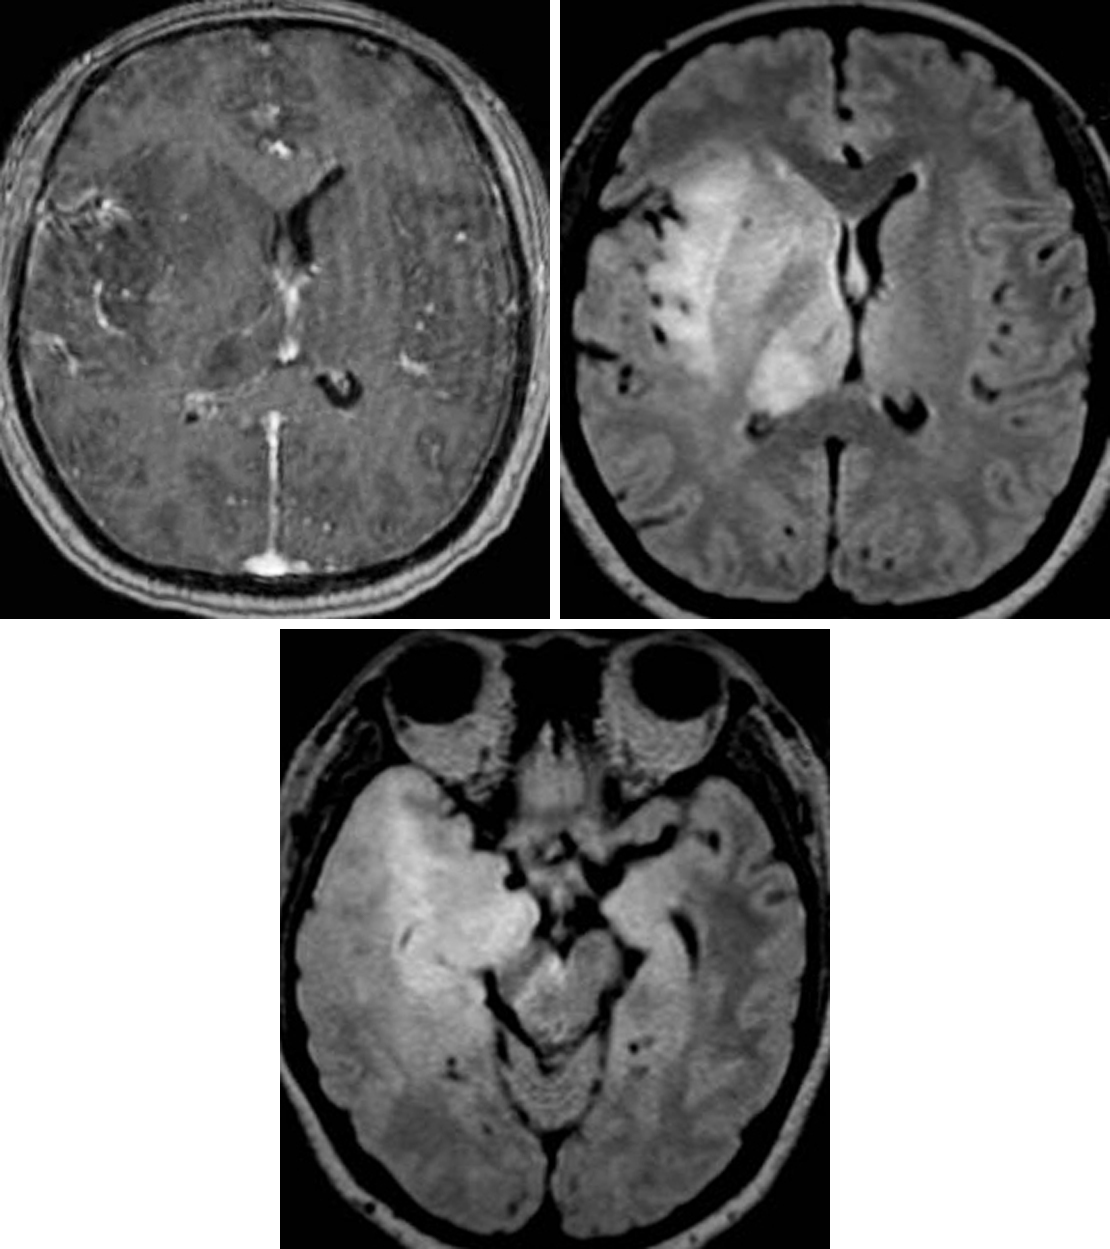 Figure 1: This diffuse infiltrative glioma was described as gliomatosis cerebri under previous classification systems. (Top Left and Right) Note the diffuse FLAIR involvement of the right temporal lobe, posterior right frontal lobe, right insula, right basal ganglia, and right thalamus. (Bottom) No enhancement is present in this lesion on T1WI after contrast administration.